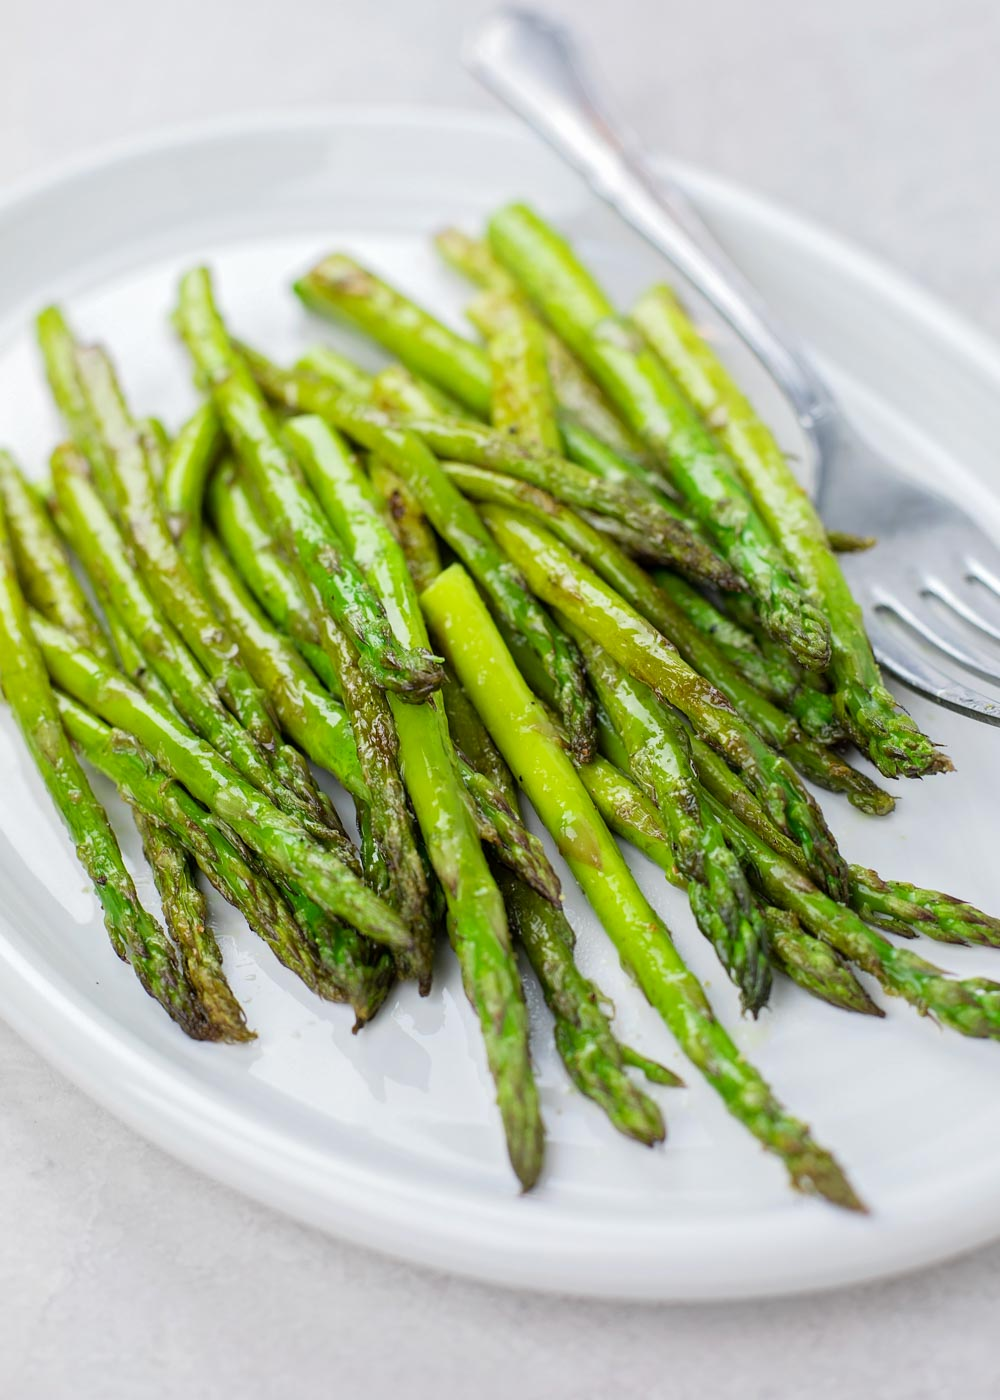 Roasted asparagus recipe on white plate